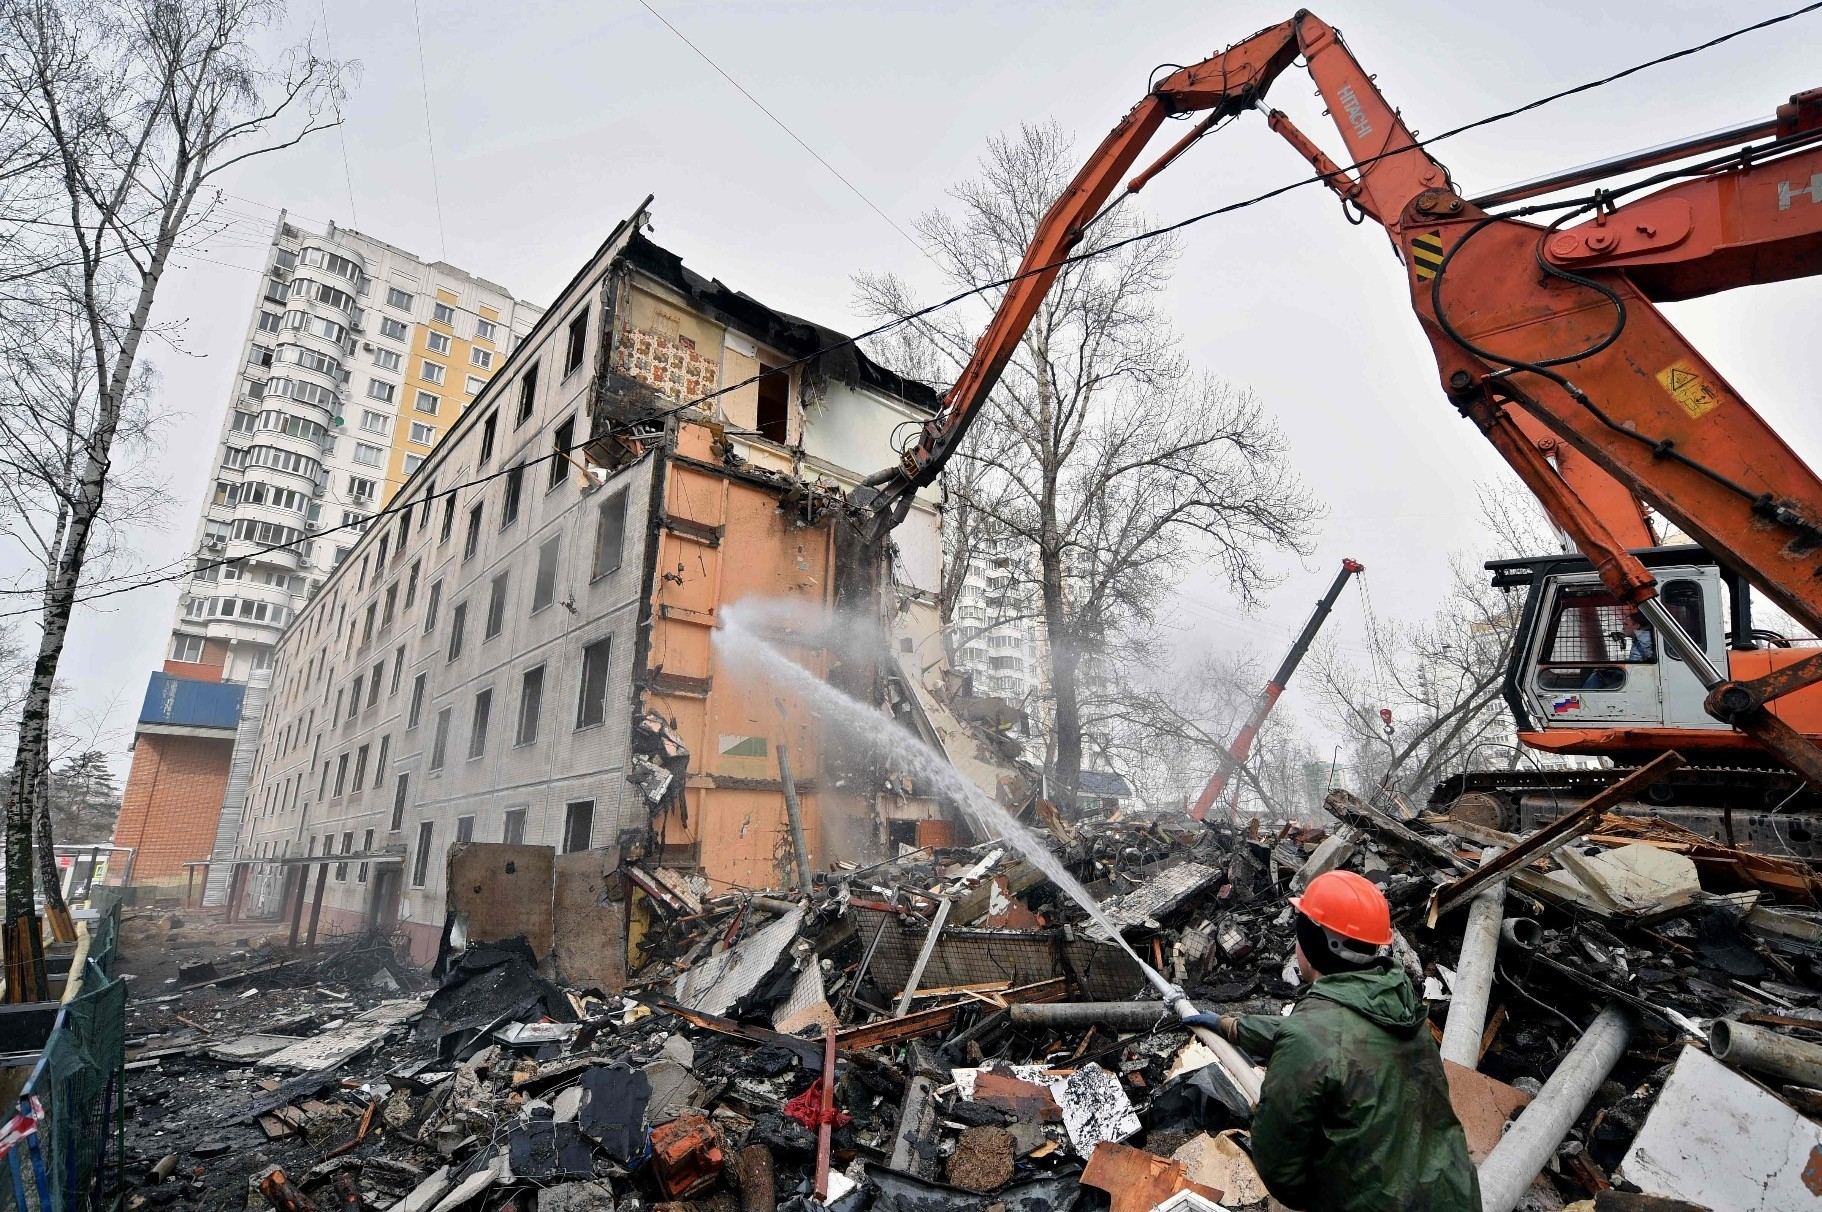 An excavator demolishes a five-storey apartment block in Moscow. City authorities headed by Kremlin-backed Moscow mayor Sergei Sobyanin initiated the vast program - due to start in September - to knock down low-rise housing.